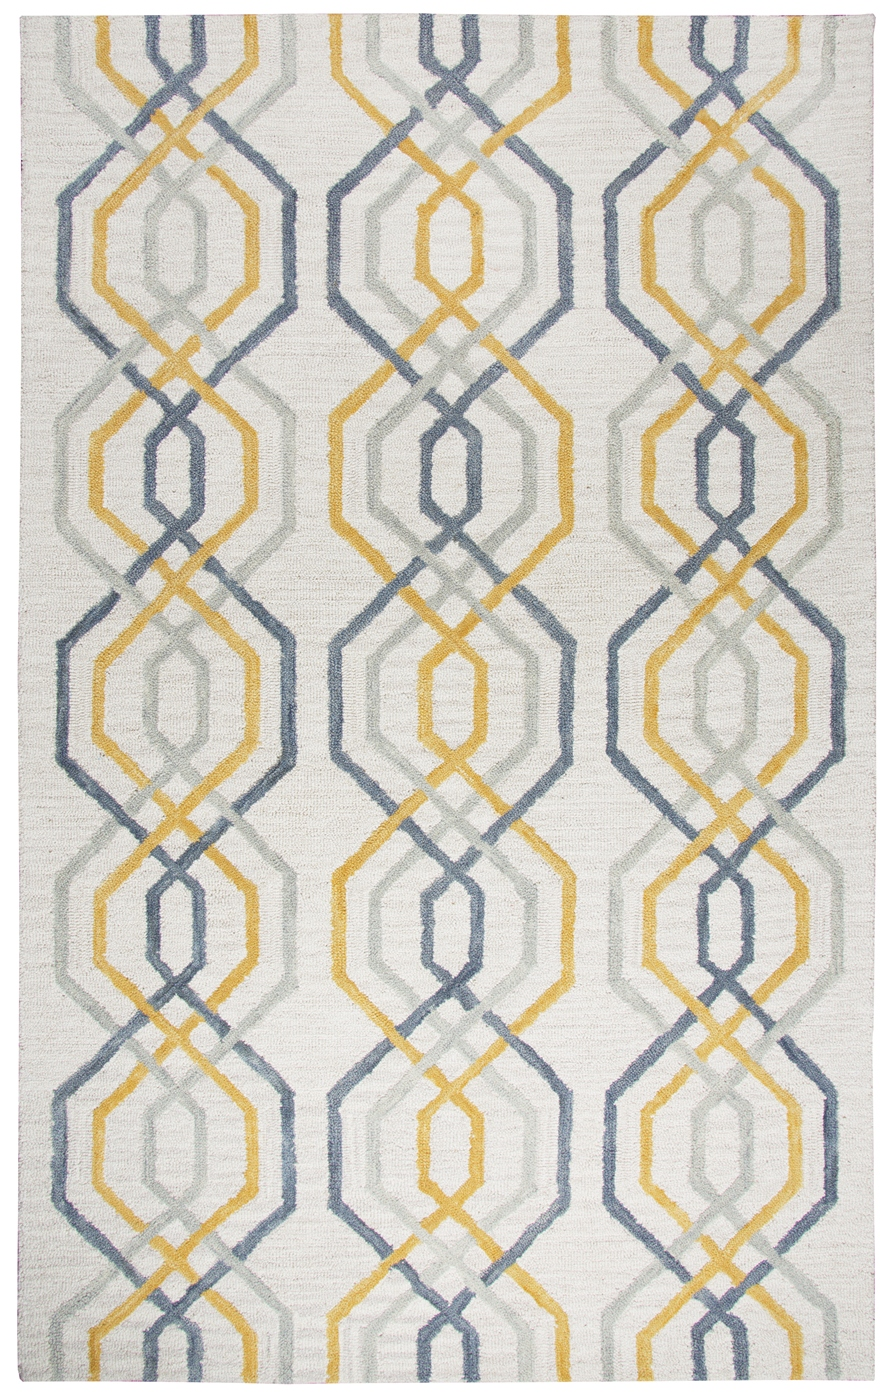 Lancaster Geometric Line Pattern Wool Area Rug In Cream